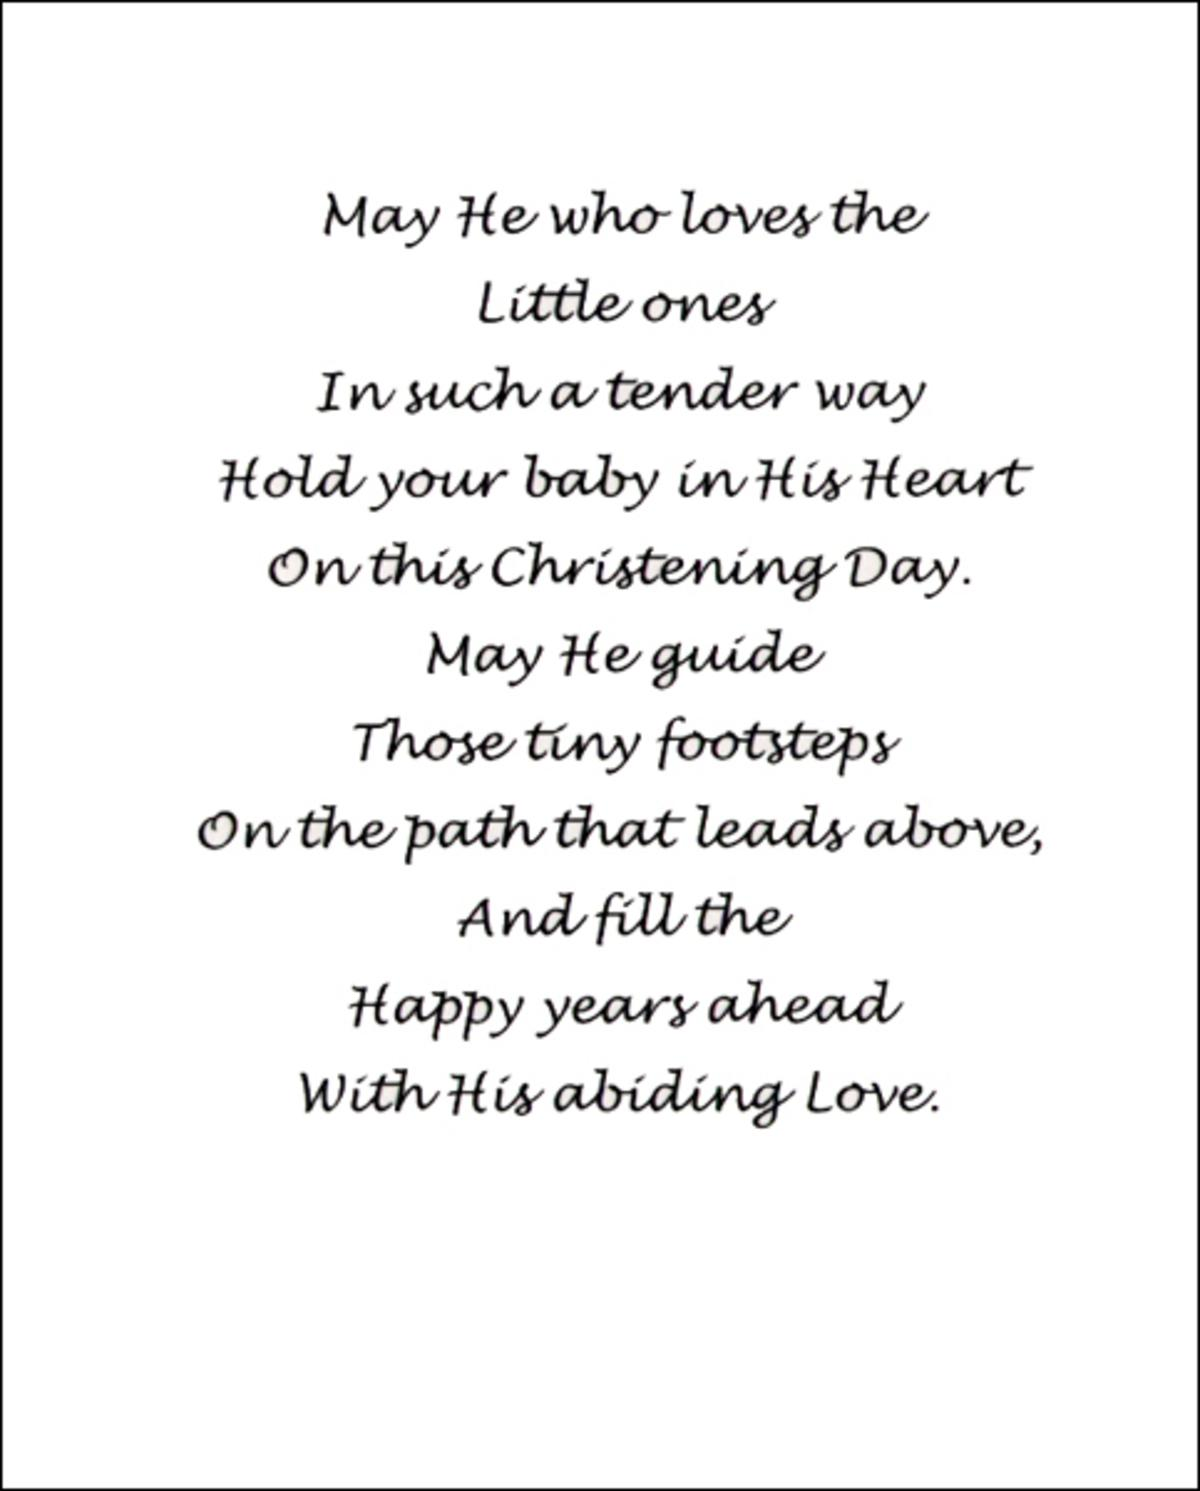 Poems and Readings for a Christening or Naming Ceremony